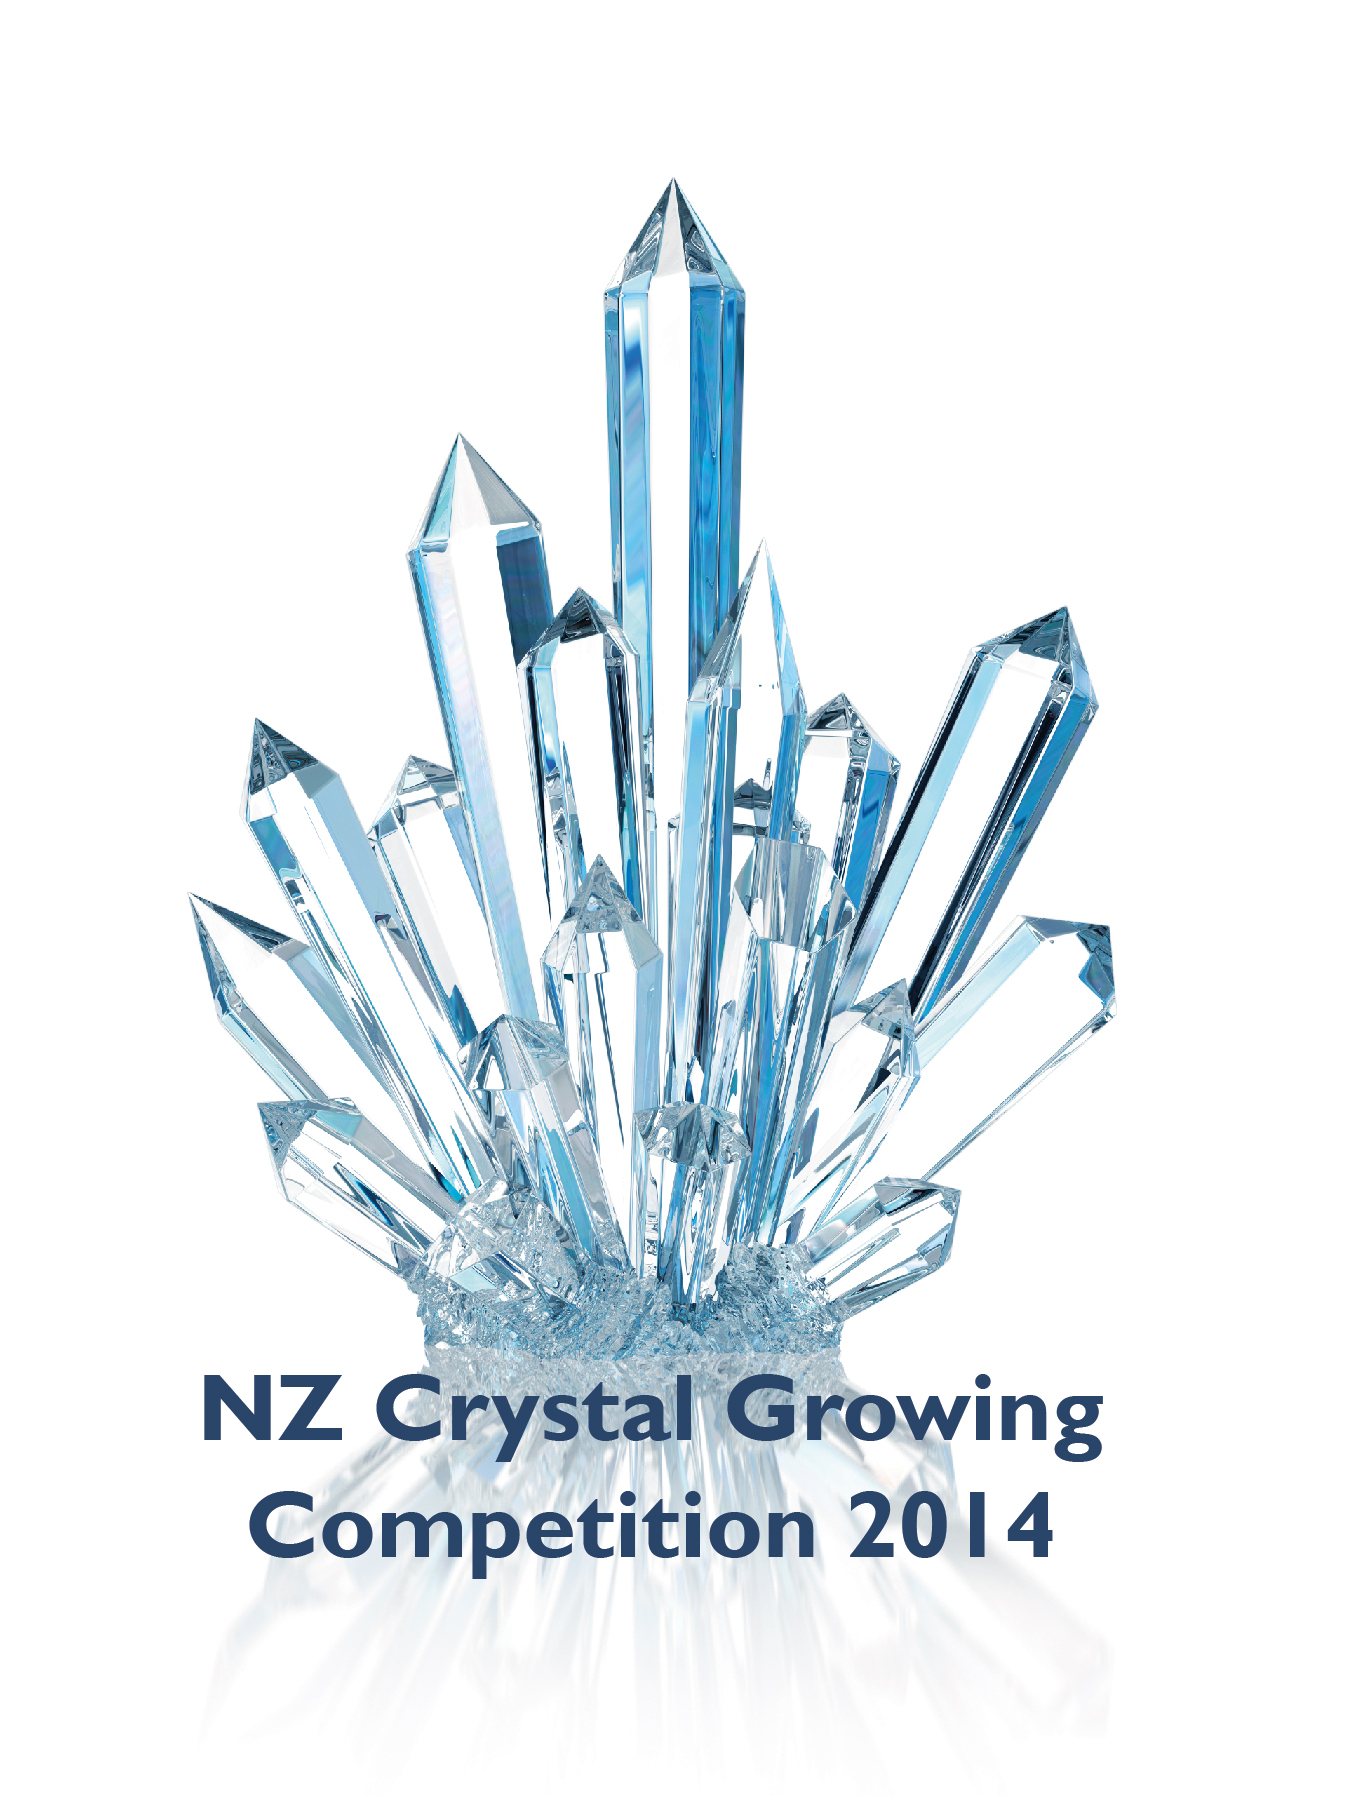 concursouy crystal growing contest logo usdiamond nz crystal growing competition